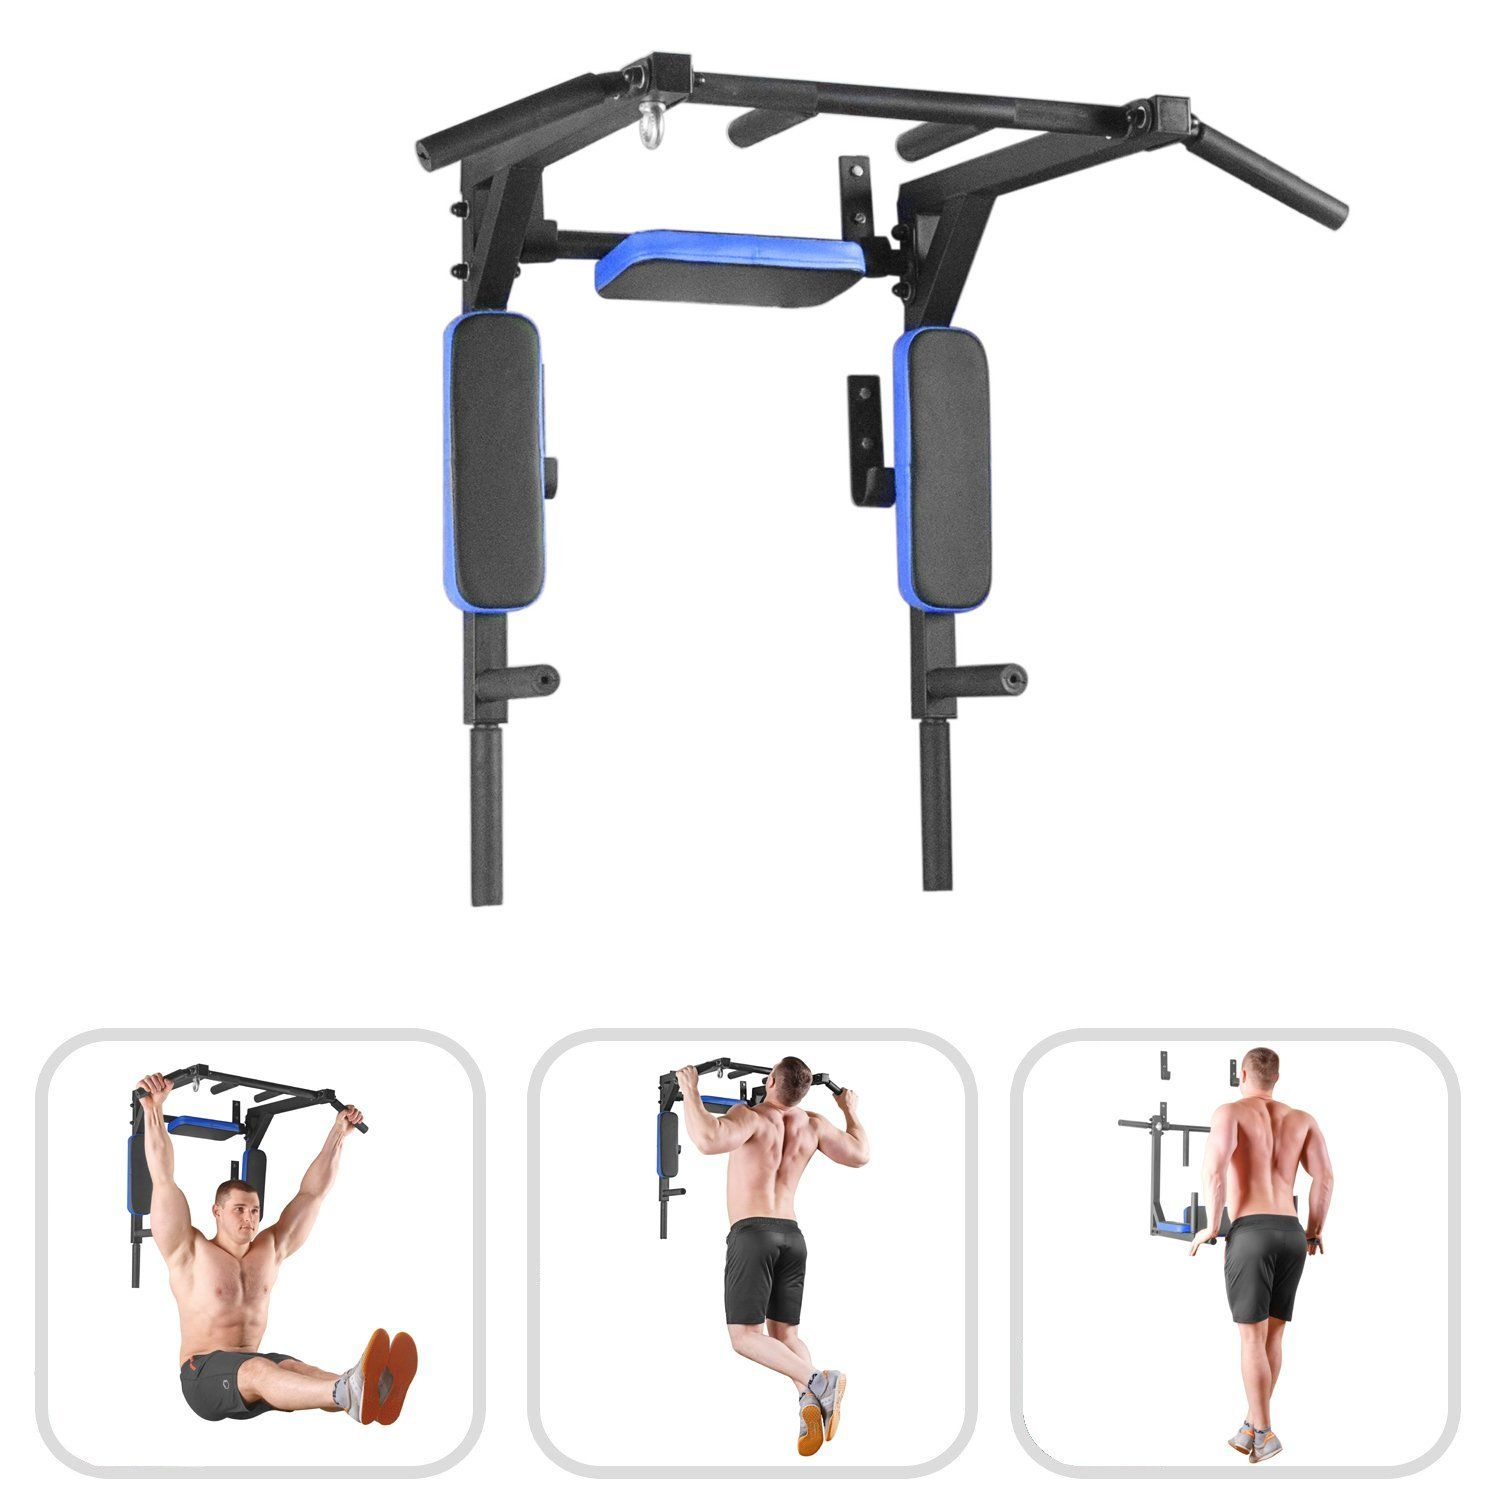 Training Pull Up Bar Portable Body Fitness Workout Home Gym Exercise Chin Up Bar